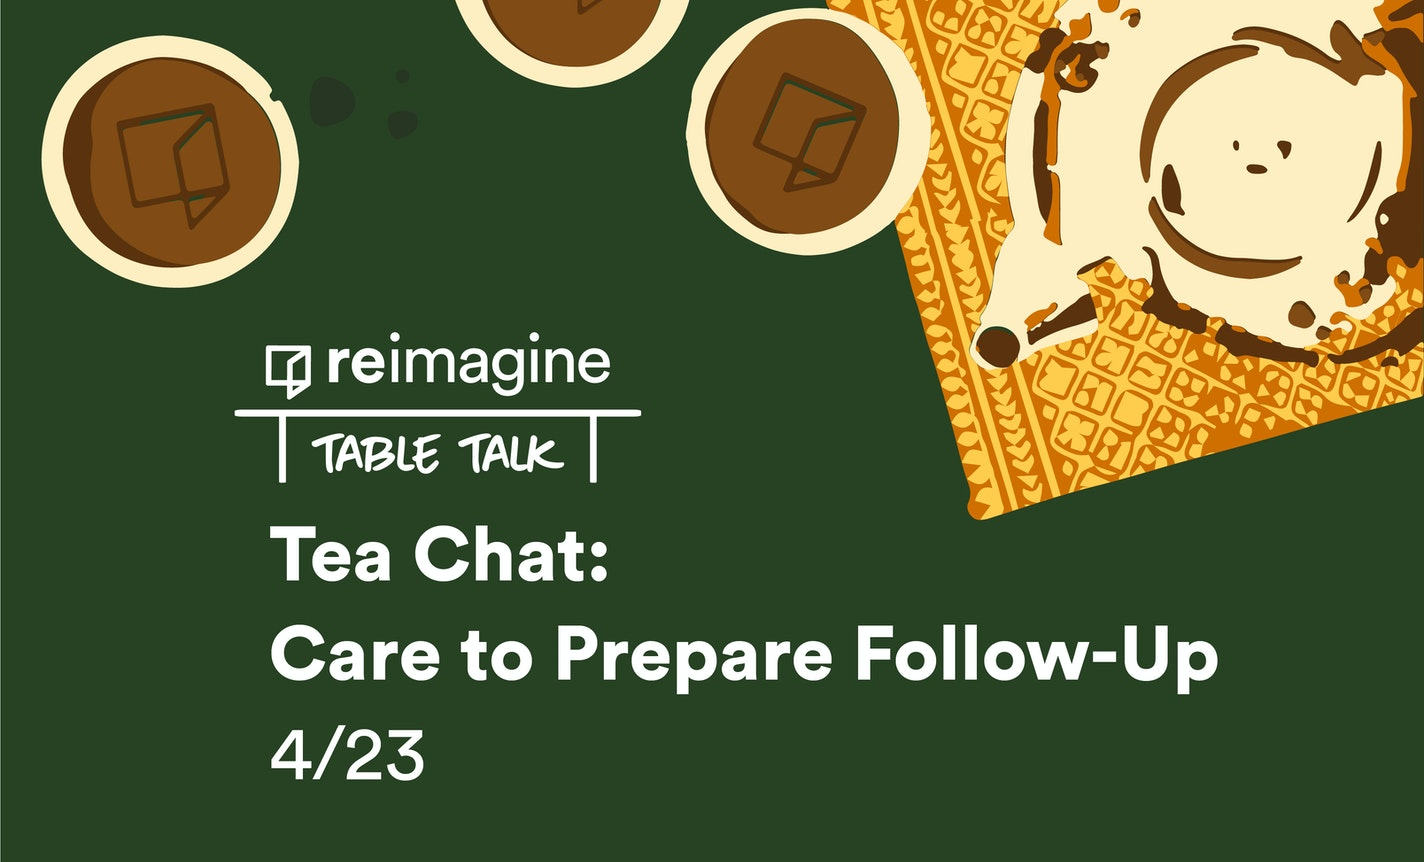 Tea Chat: Care to Prepare Follow-up